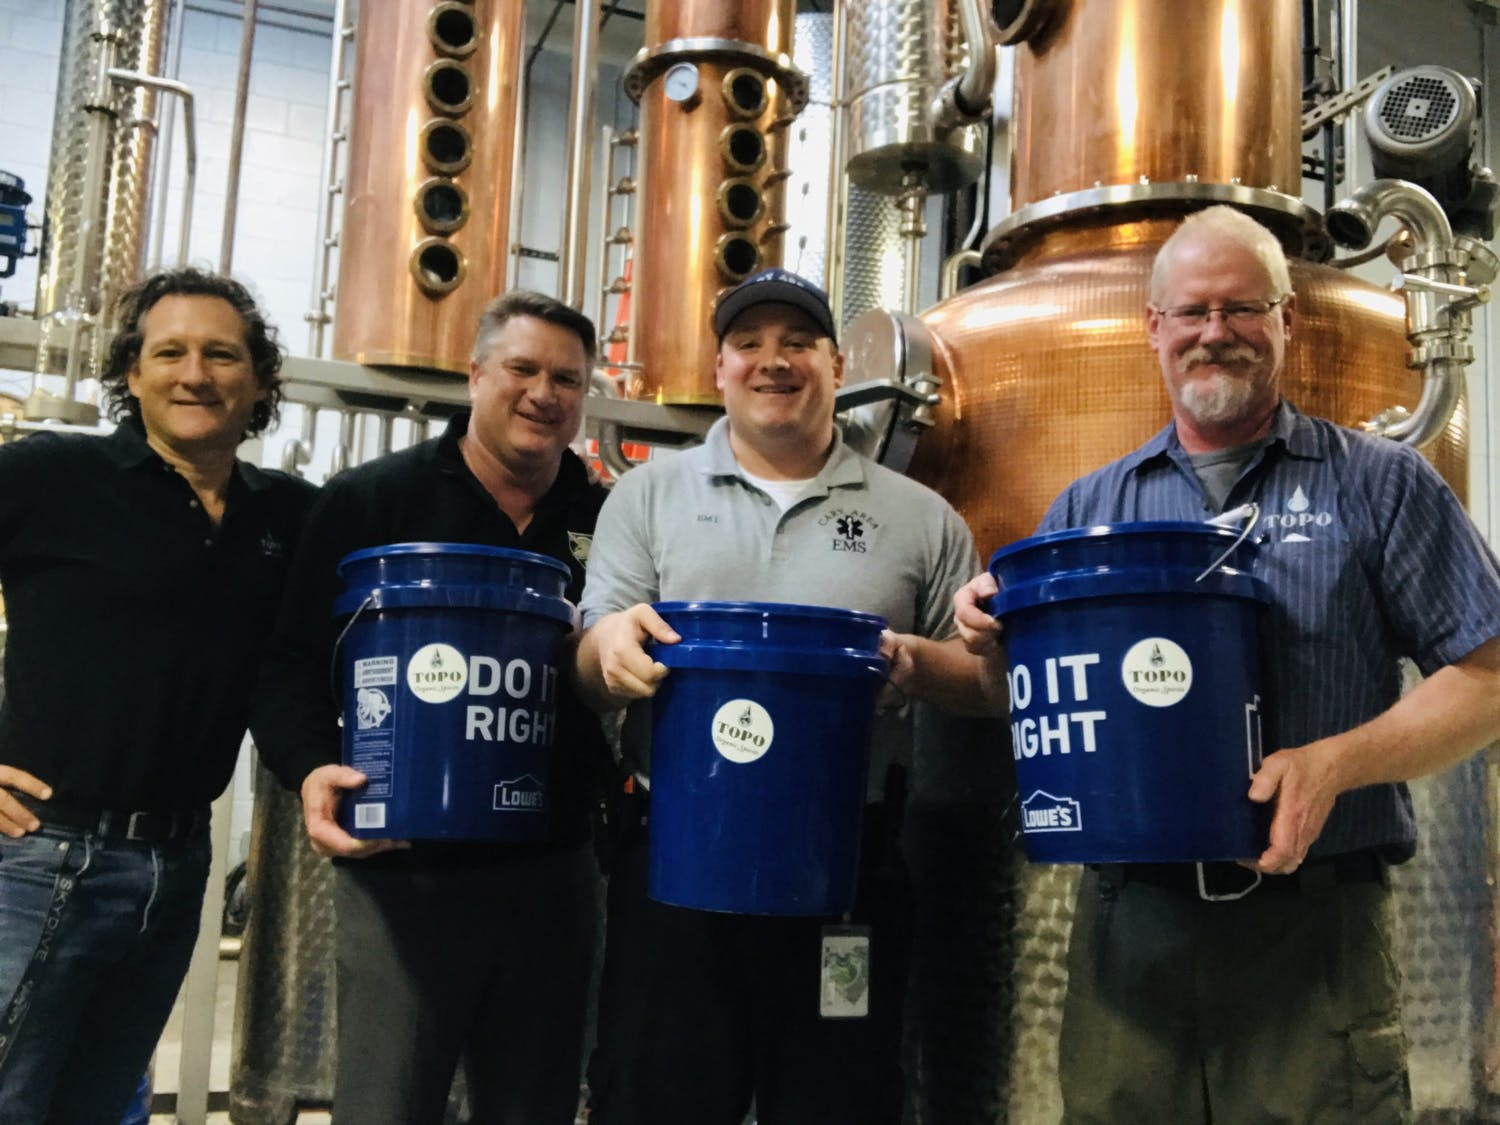 Top of The Hill Restaurant & Brewery is now producing hand sanitizer after the U.S. Food and Drug Administration gave distilleries the approval to do so because of COVID-19. (From left) TOPO Spirit Guide Esteban McMahan, TOPO Proprietor Scott Maitland, Axon & Wake EMS Evan MacIntyre and TOPO Head Distiller George Dusek pose for a picture in the TOPO distillery. Photo courtesy of Esteban McMahan.